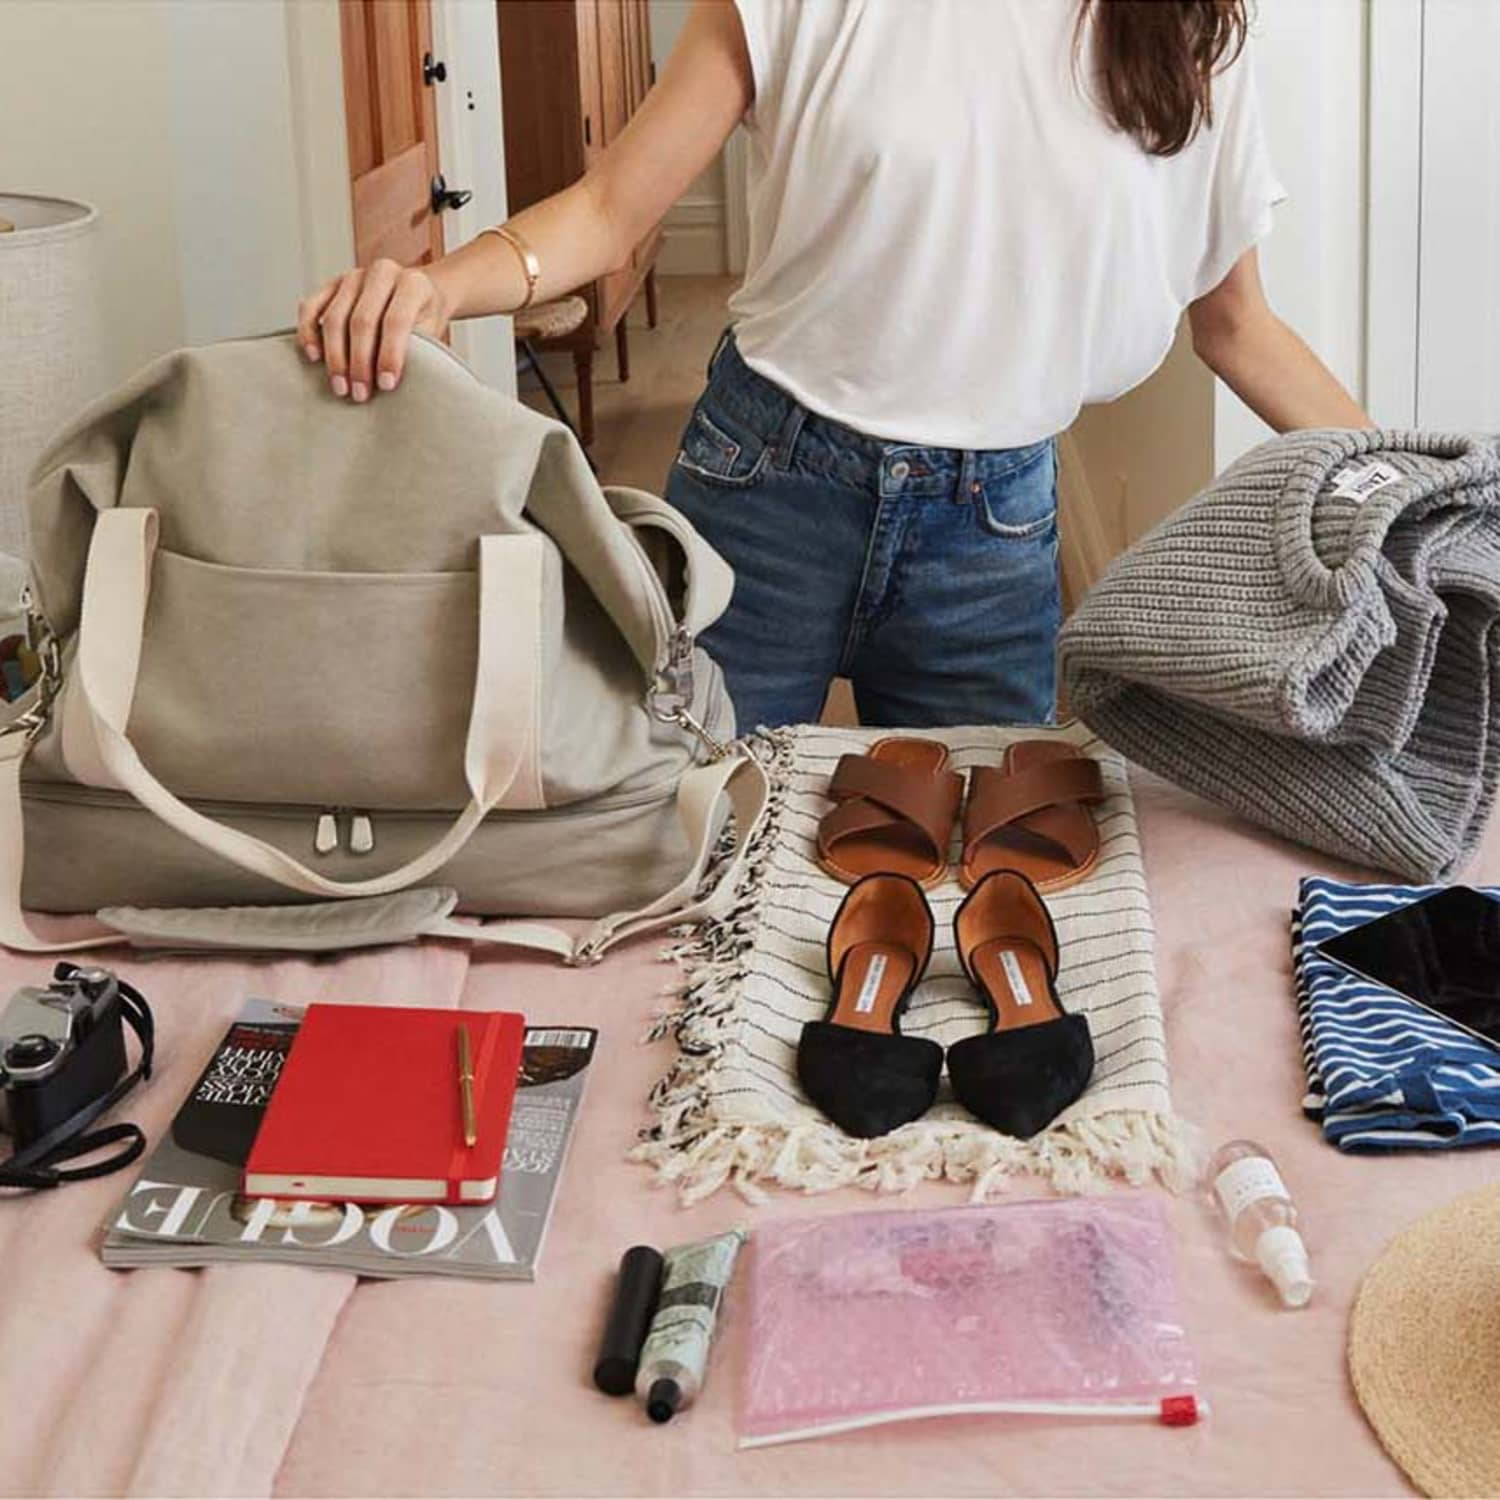 34f33bc59 The Best Weekender Bags - Stylish and Functional | Apartment Therapy